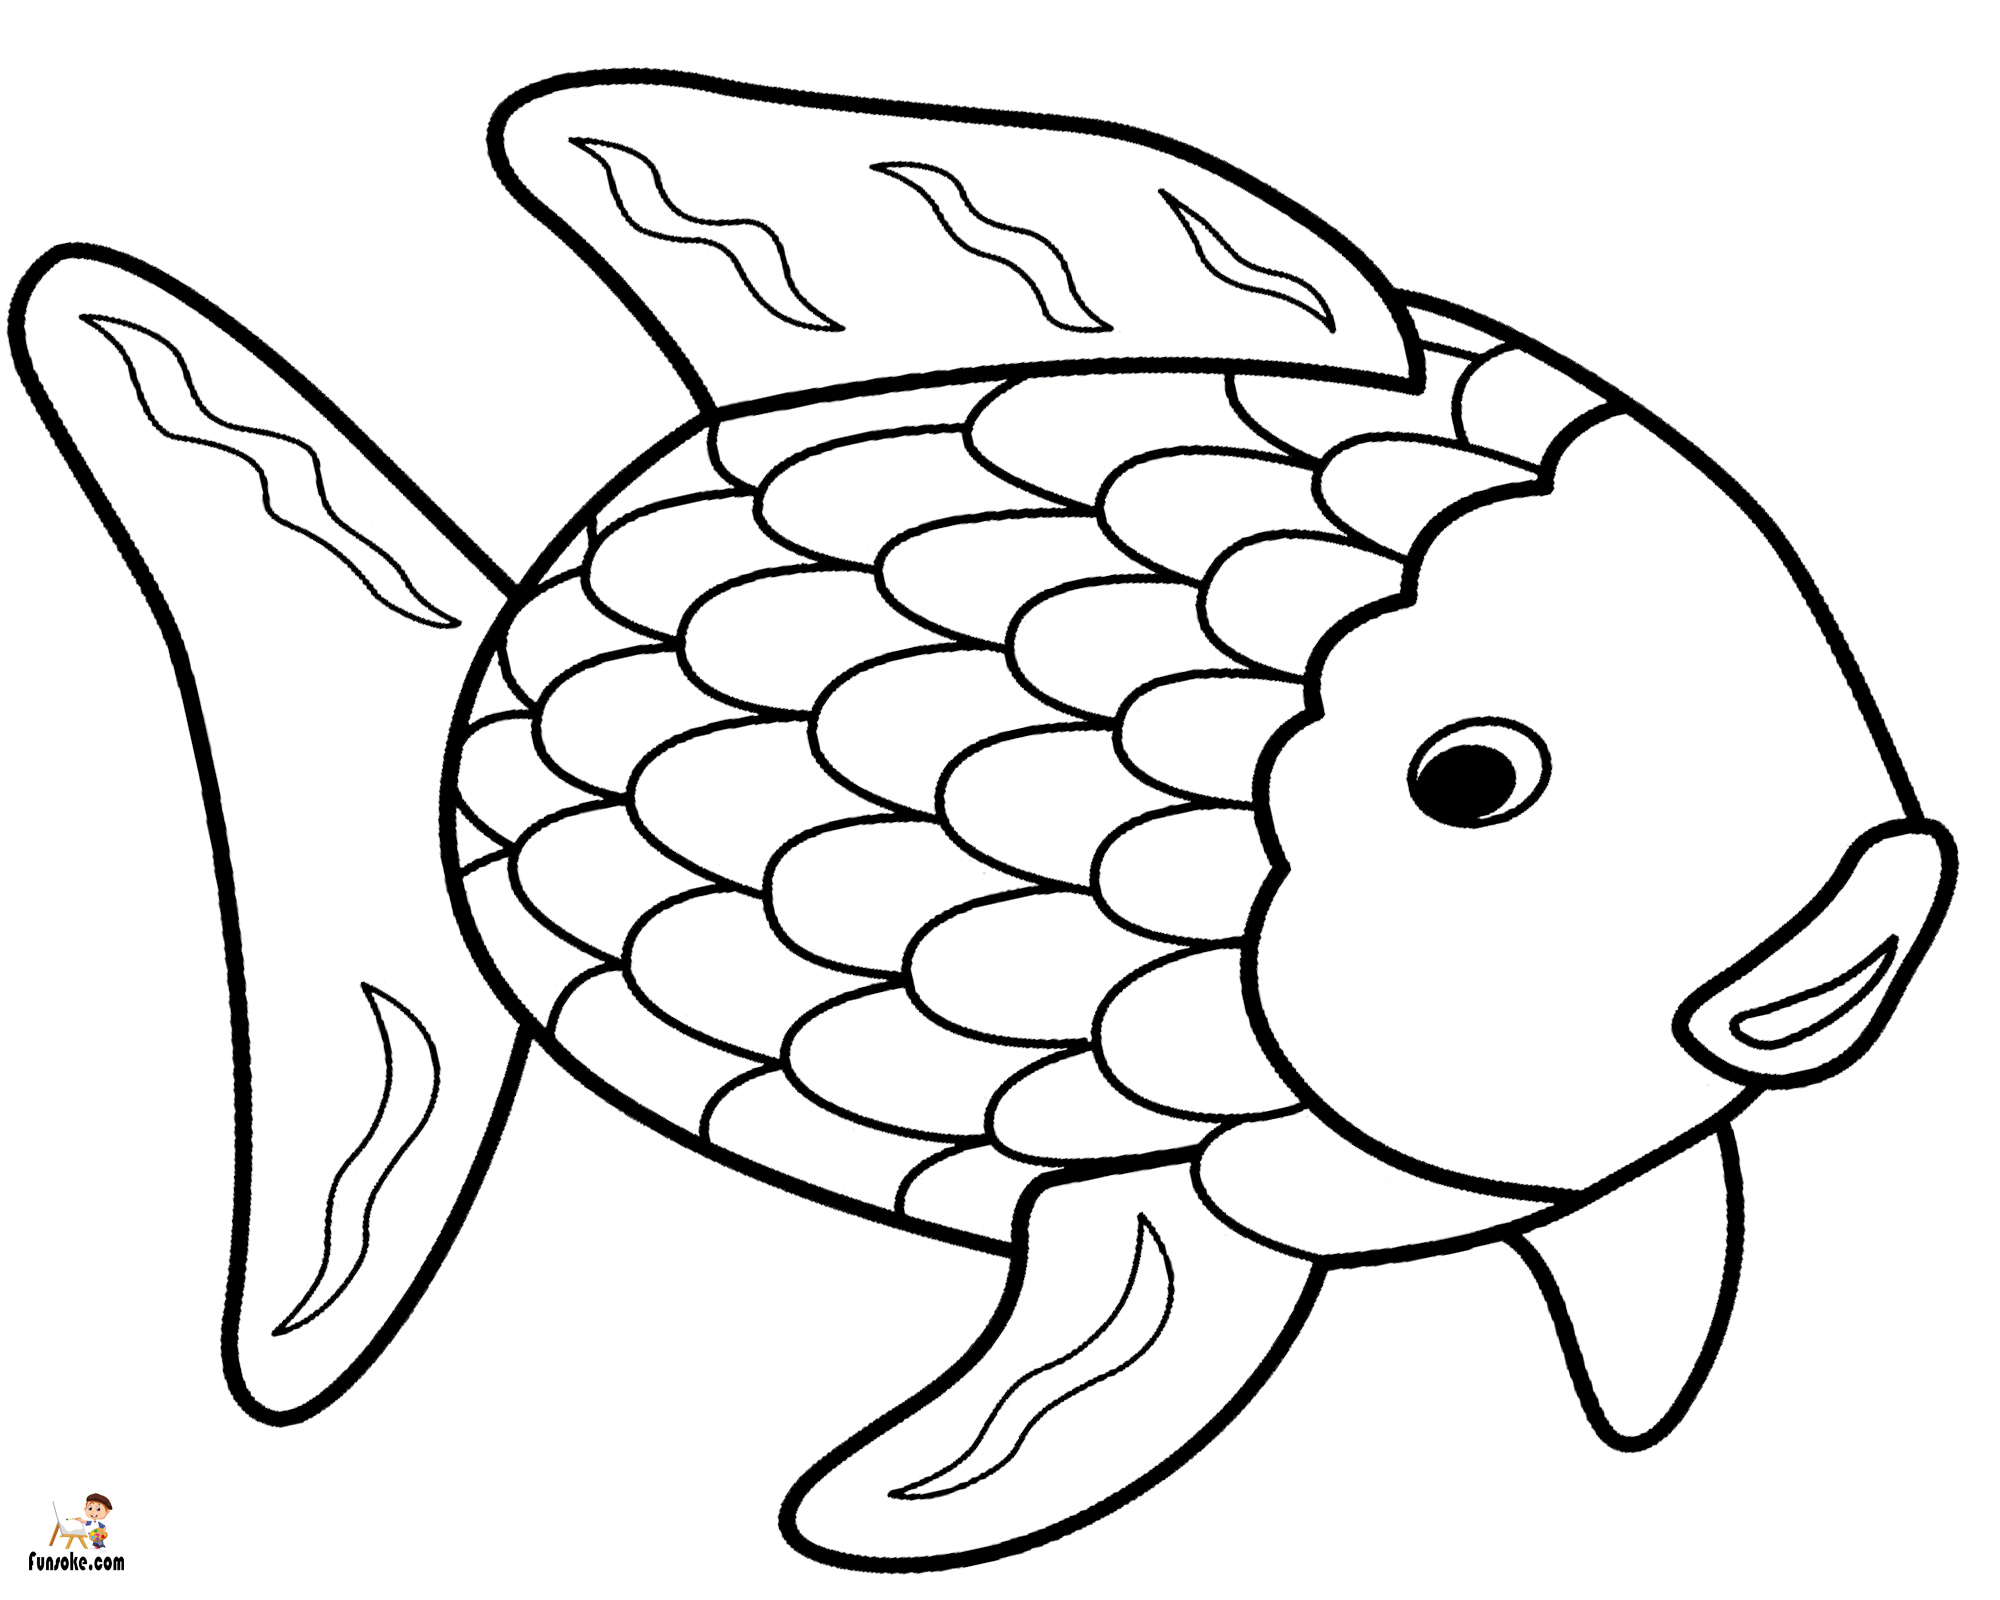 goldfish coloring simple fish coloring pages download and print for free coloring goldfish